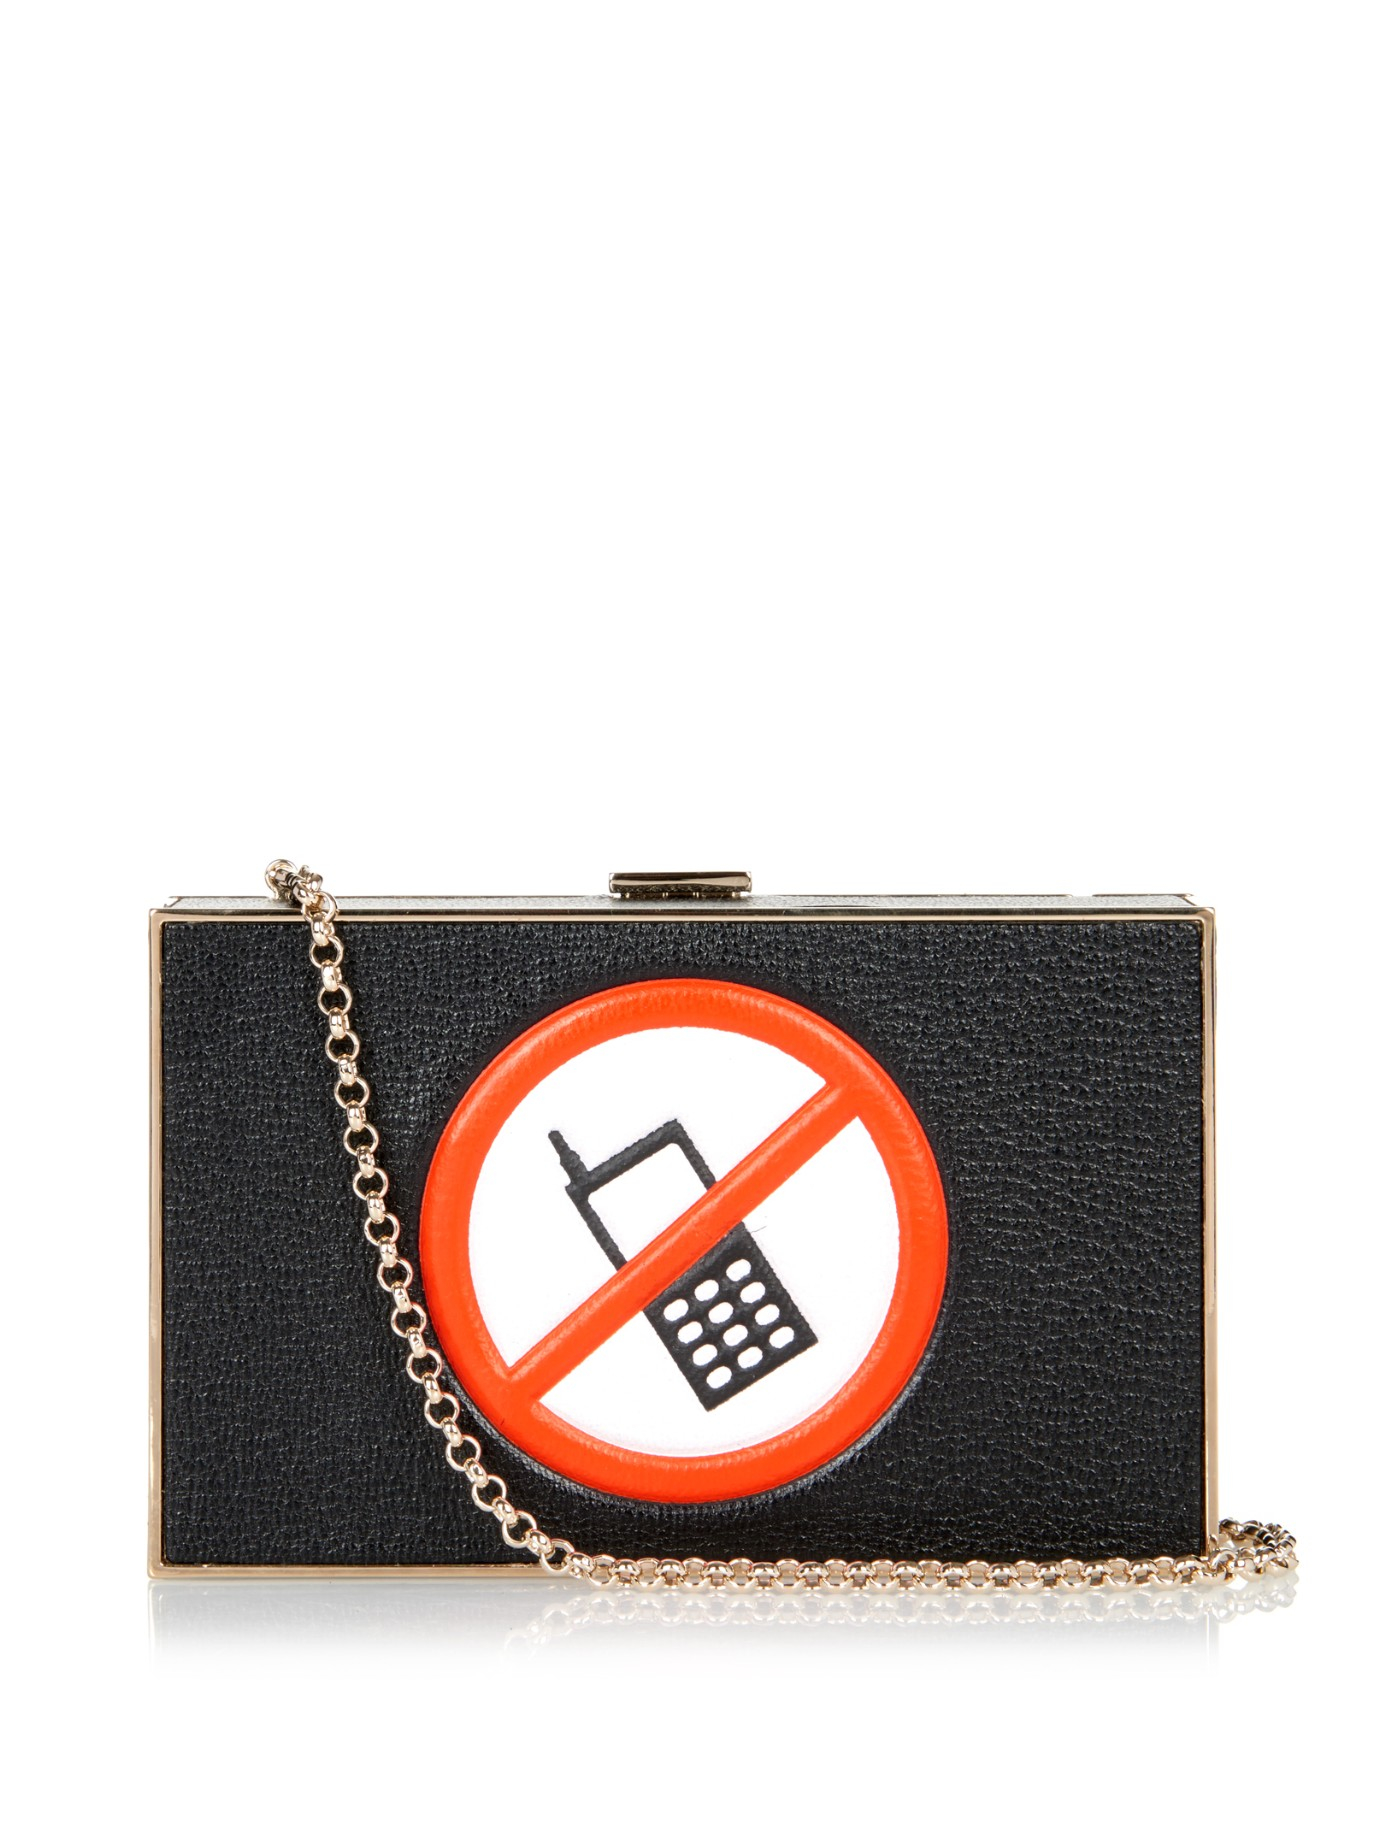 Anya Hindmarch No Mobile Phone Imperial Leather Clutch in Black - Lyst afa1a8467728